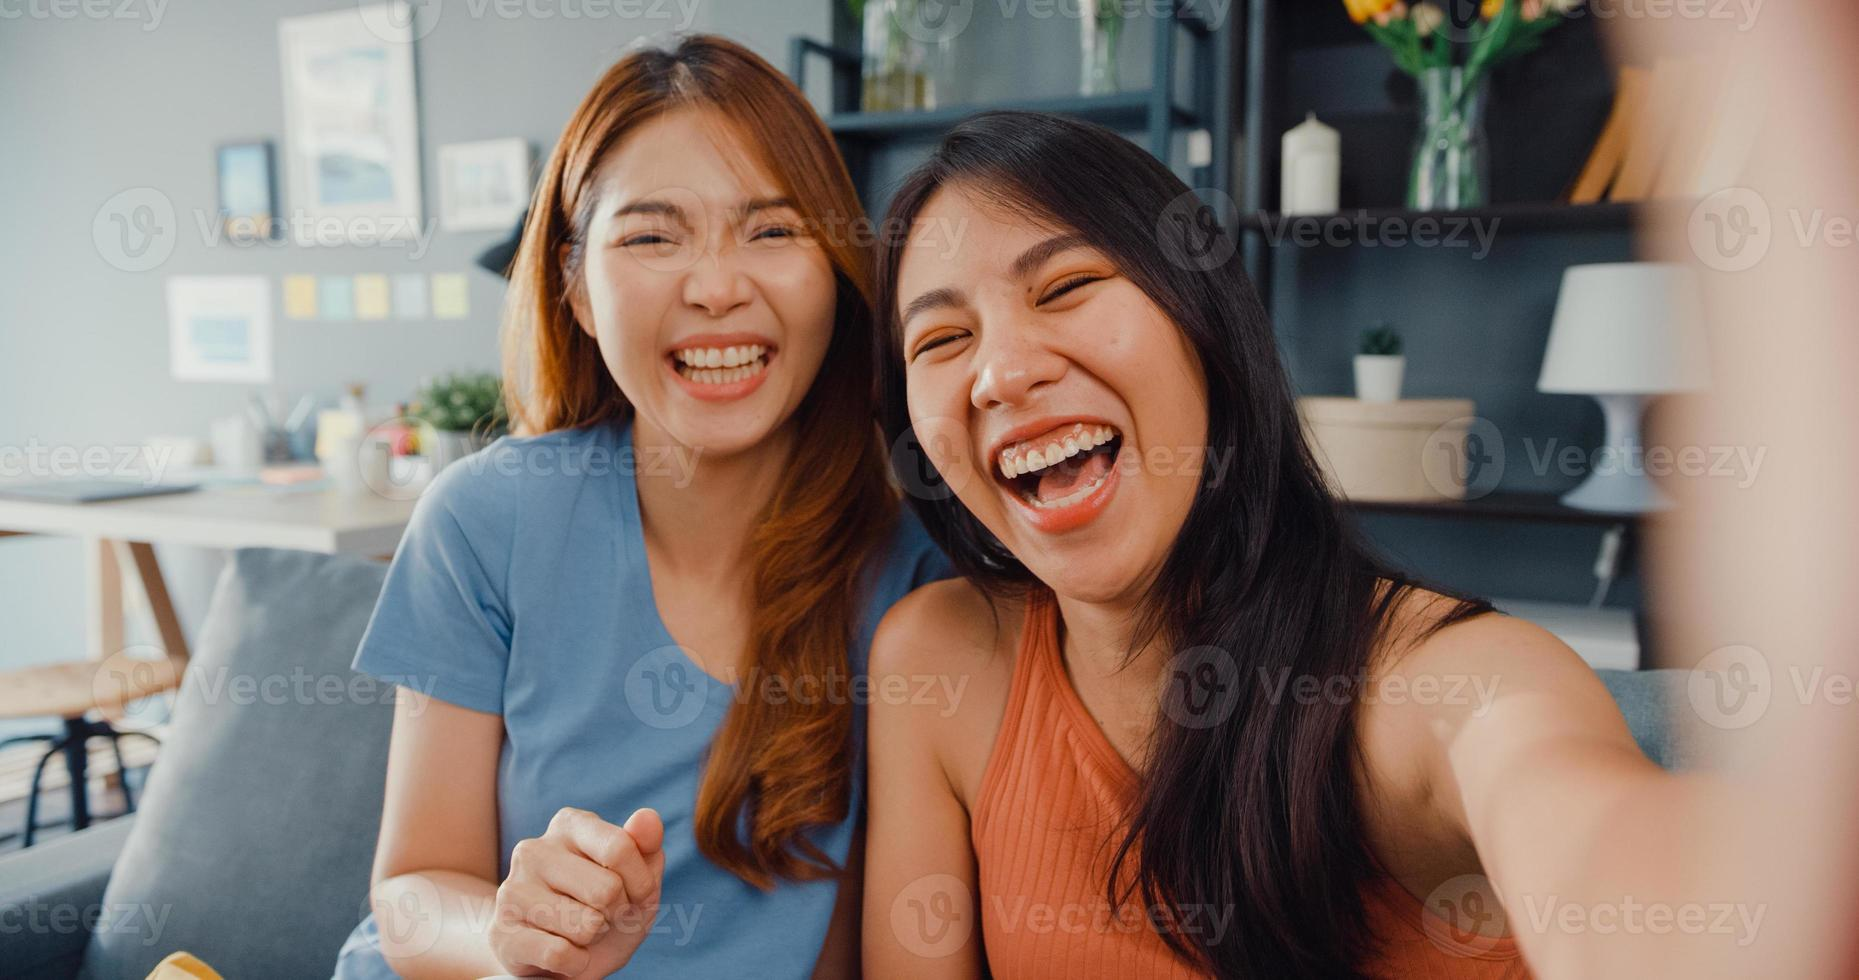 Teenager Asian women feeling happy smiling selfie and looking to camera while relax in living room at home. Cheerful Roommate ladies video call with friend and family, Lifestyle woman at home concept. photo